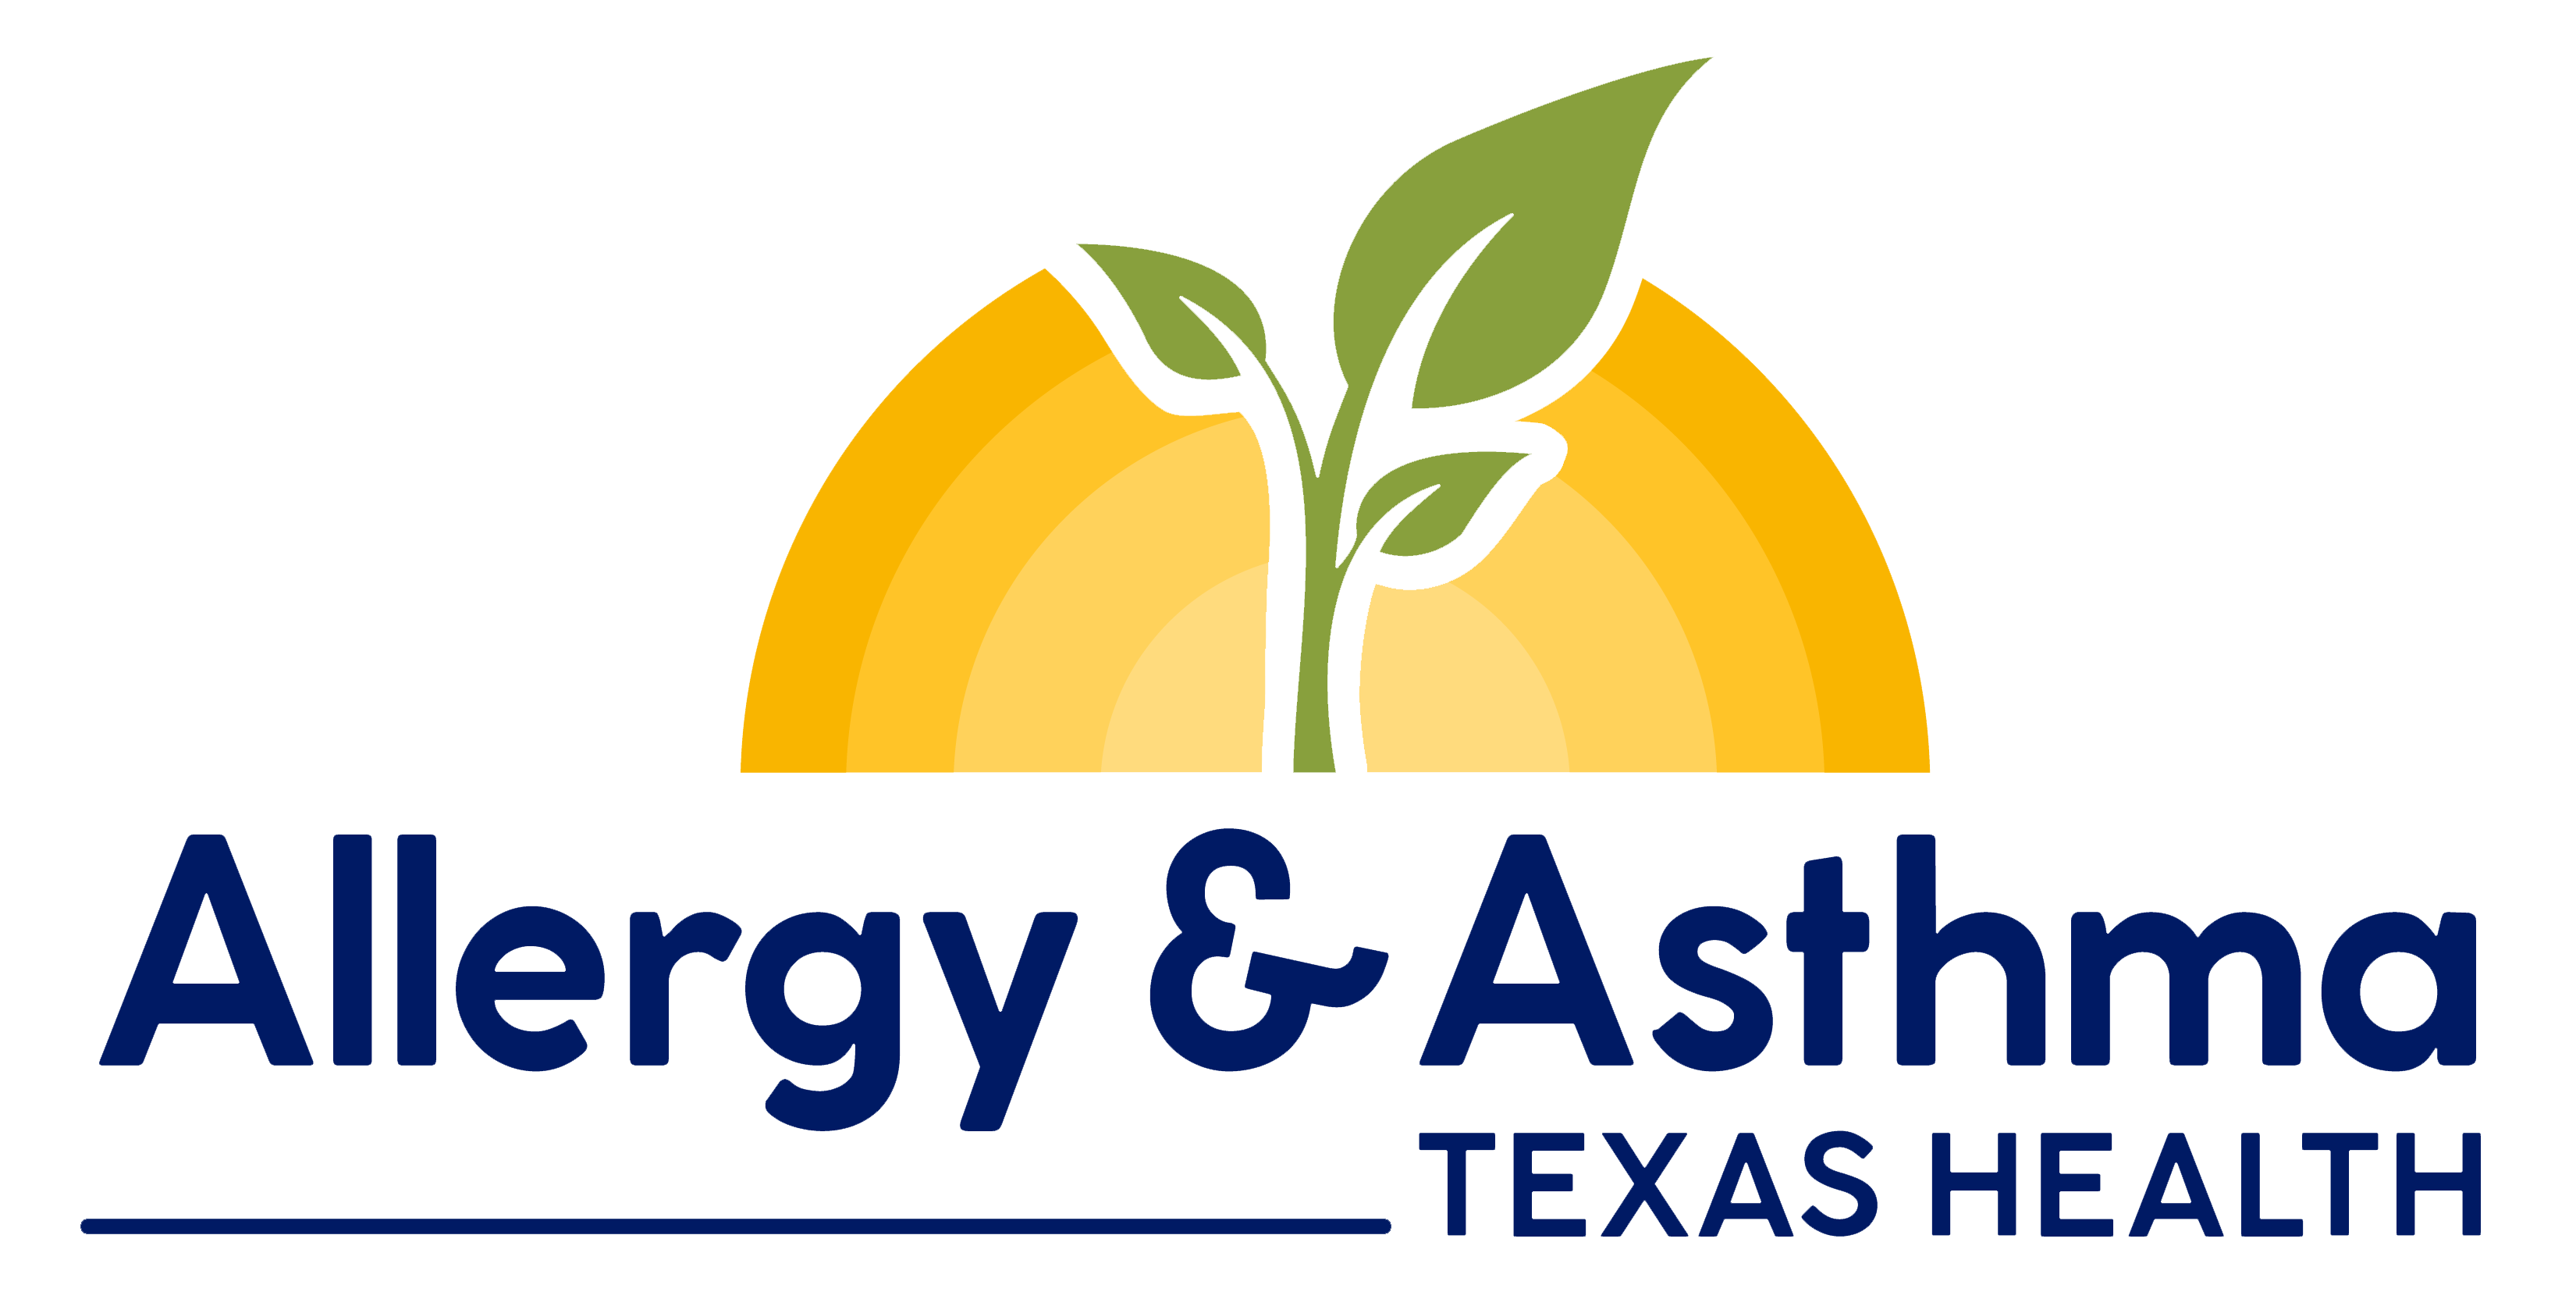 Allergy & Asthma Texas Health